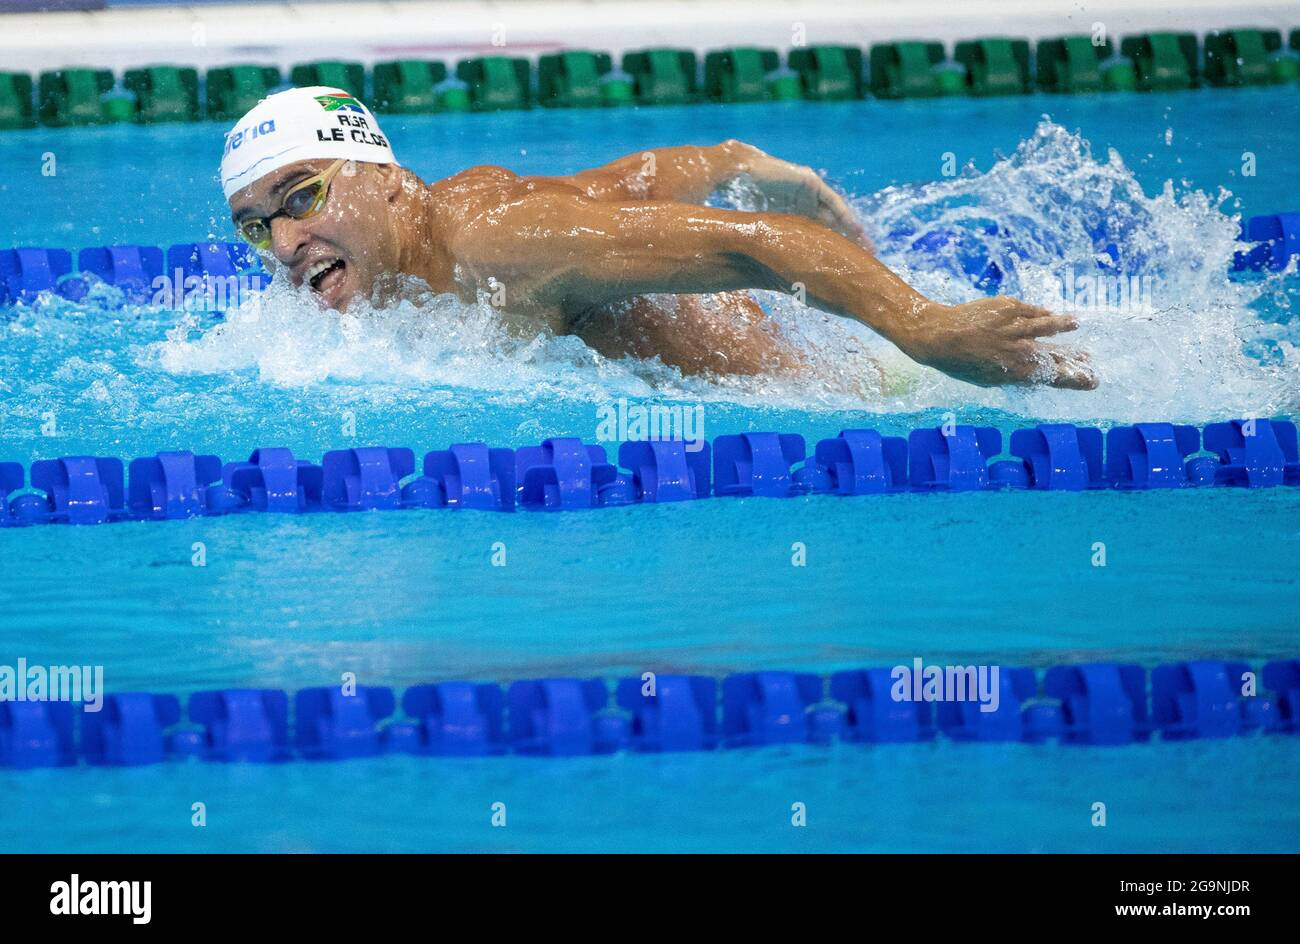 Tokyo, Japan. 27th July, 2021. CHAD LE CLOS (RSA) competes in the Men's 200m Butterfly Semifinal during the Tokyo 2020 Olympics at the Tokyo Aquatics Centre in Tokyo. Le Clos qualified for the final. (Credit Image: © Paul Kitagaki Jr./ZUMA Press Wire) Stock Photo